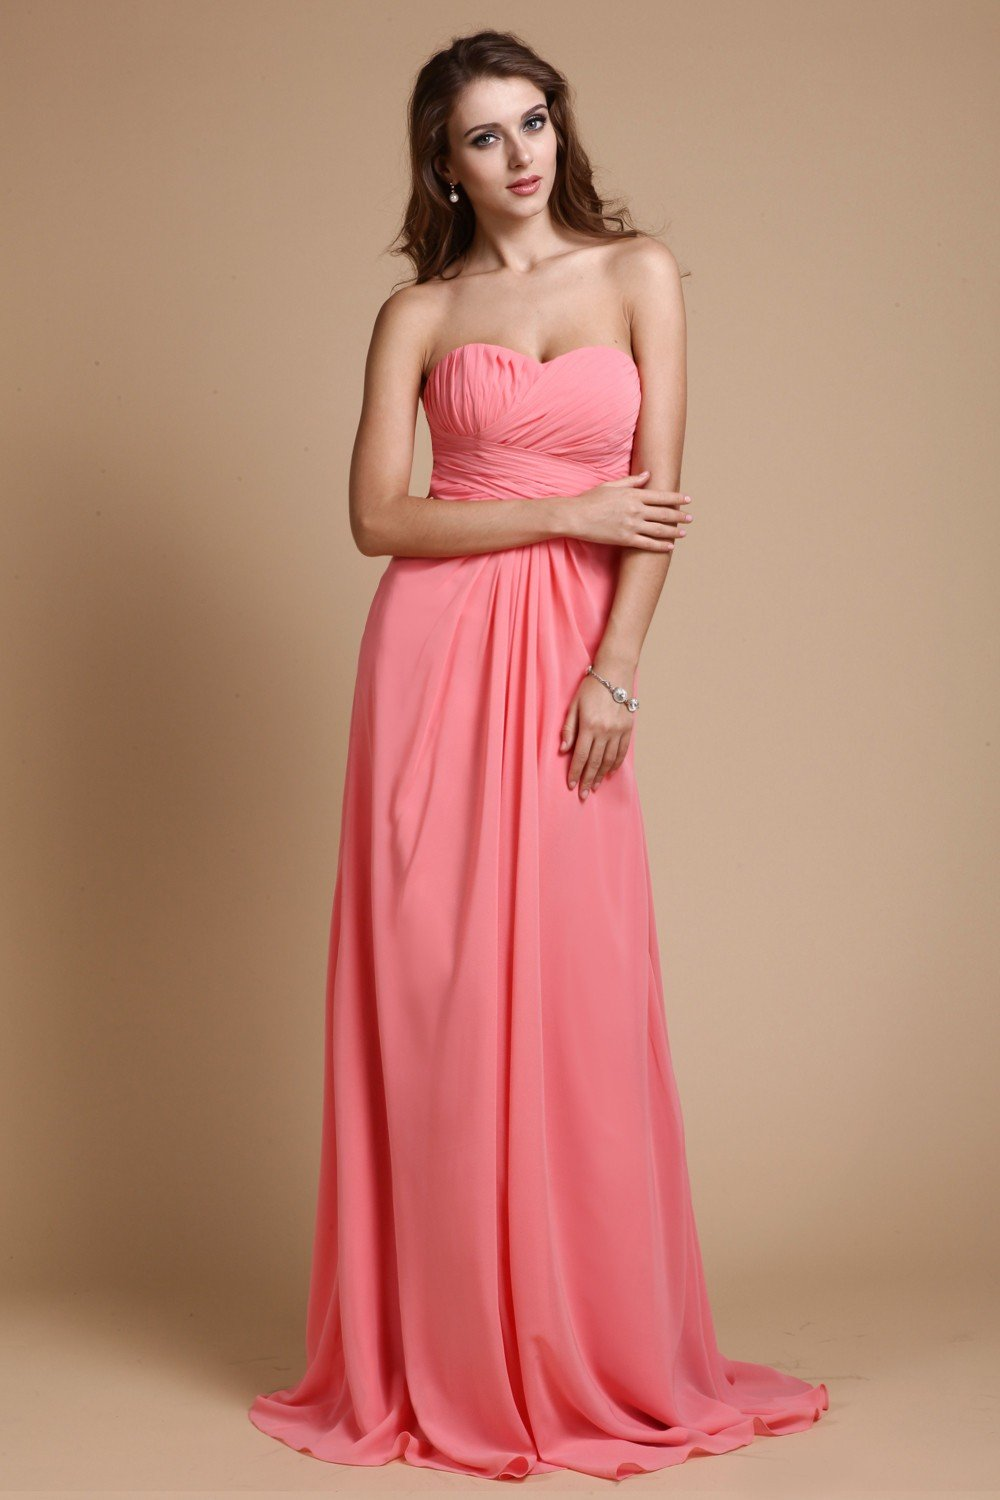 Bridesmaid dresses come in various shades of pink official yet another choice in pink shade includes hot pink for bridesmaid dresses hot pink is a perefct choice for a tropical wedding its a strong vibrant shade ombrellifo Image collections